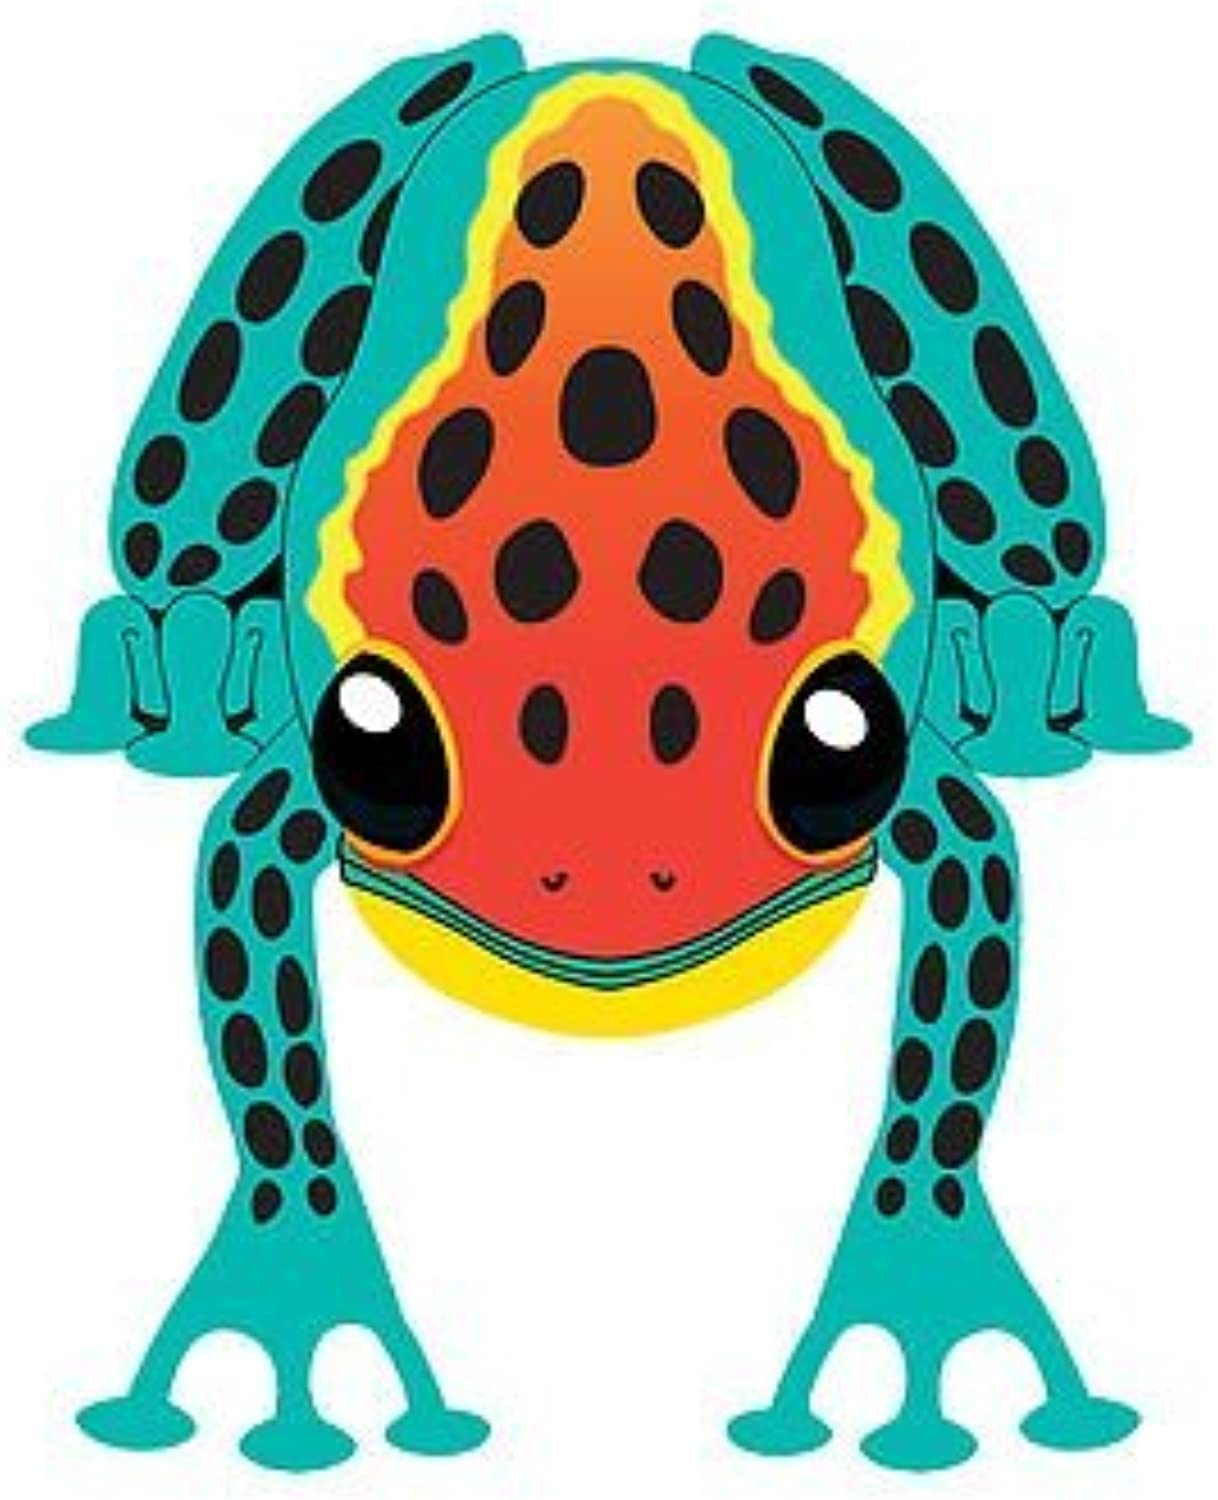 MidiKites Tree Frog Fun to fly  Easy to assemble and very stable. by Treefrog